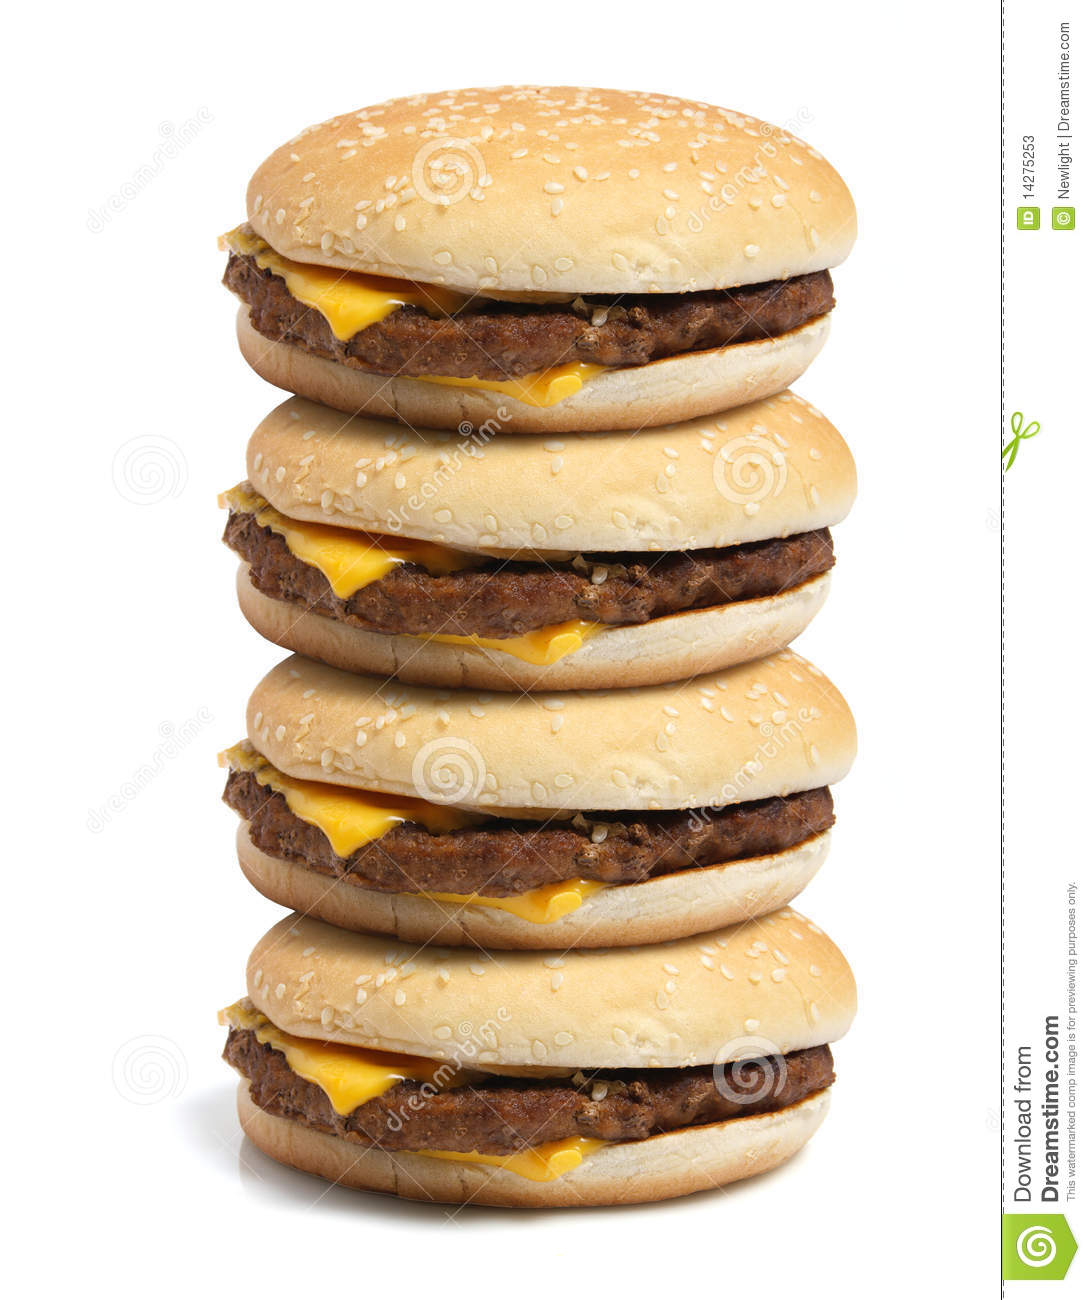 Stack Of Hamburgers Stock Photos - Image: 14275253